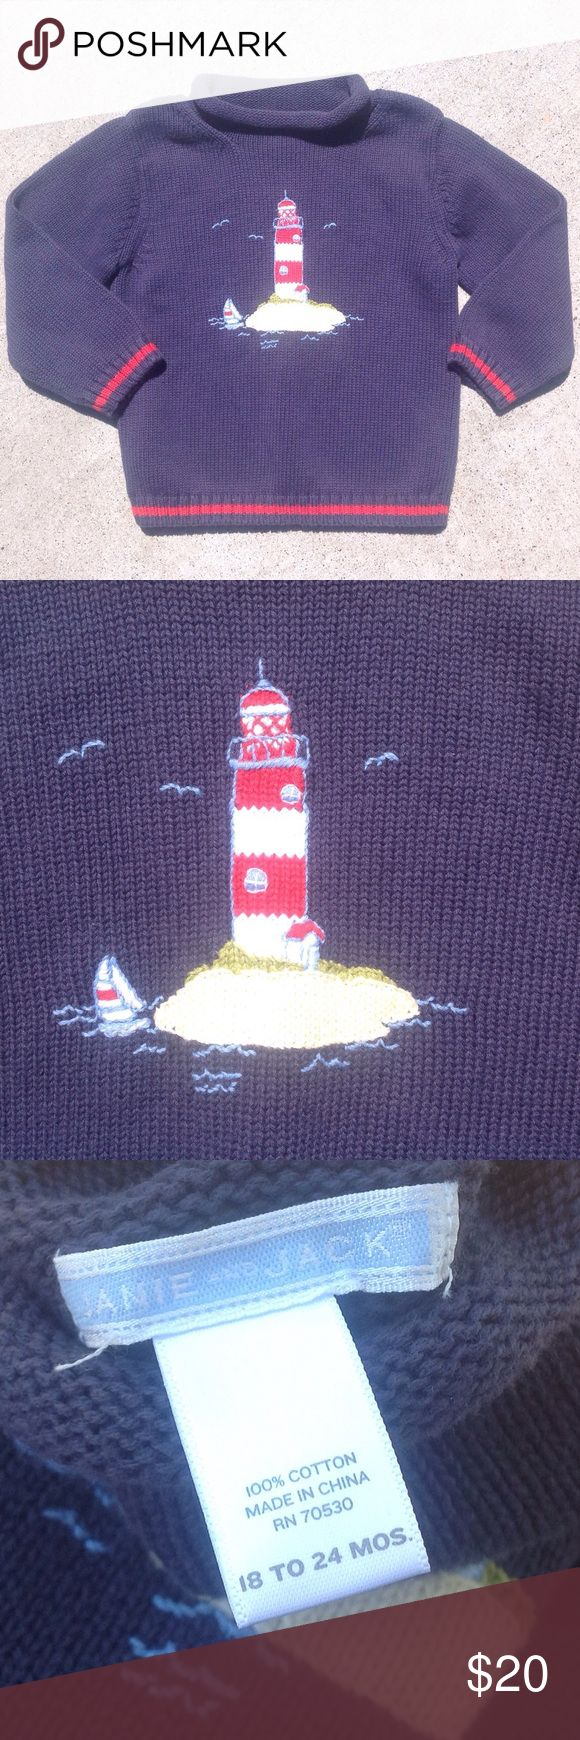 Janie and Jack Navy Lighthouse Sweater - 18-24M Navy blue sweater, long sleeves, roll neckline, with lighthouse, sailboat and seagulls. 100% Cotton. Excellent condition. Janie and Jack Shirts & Tops Sweaters